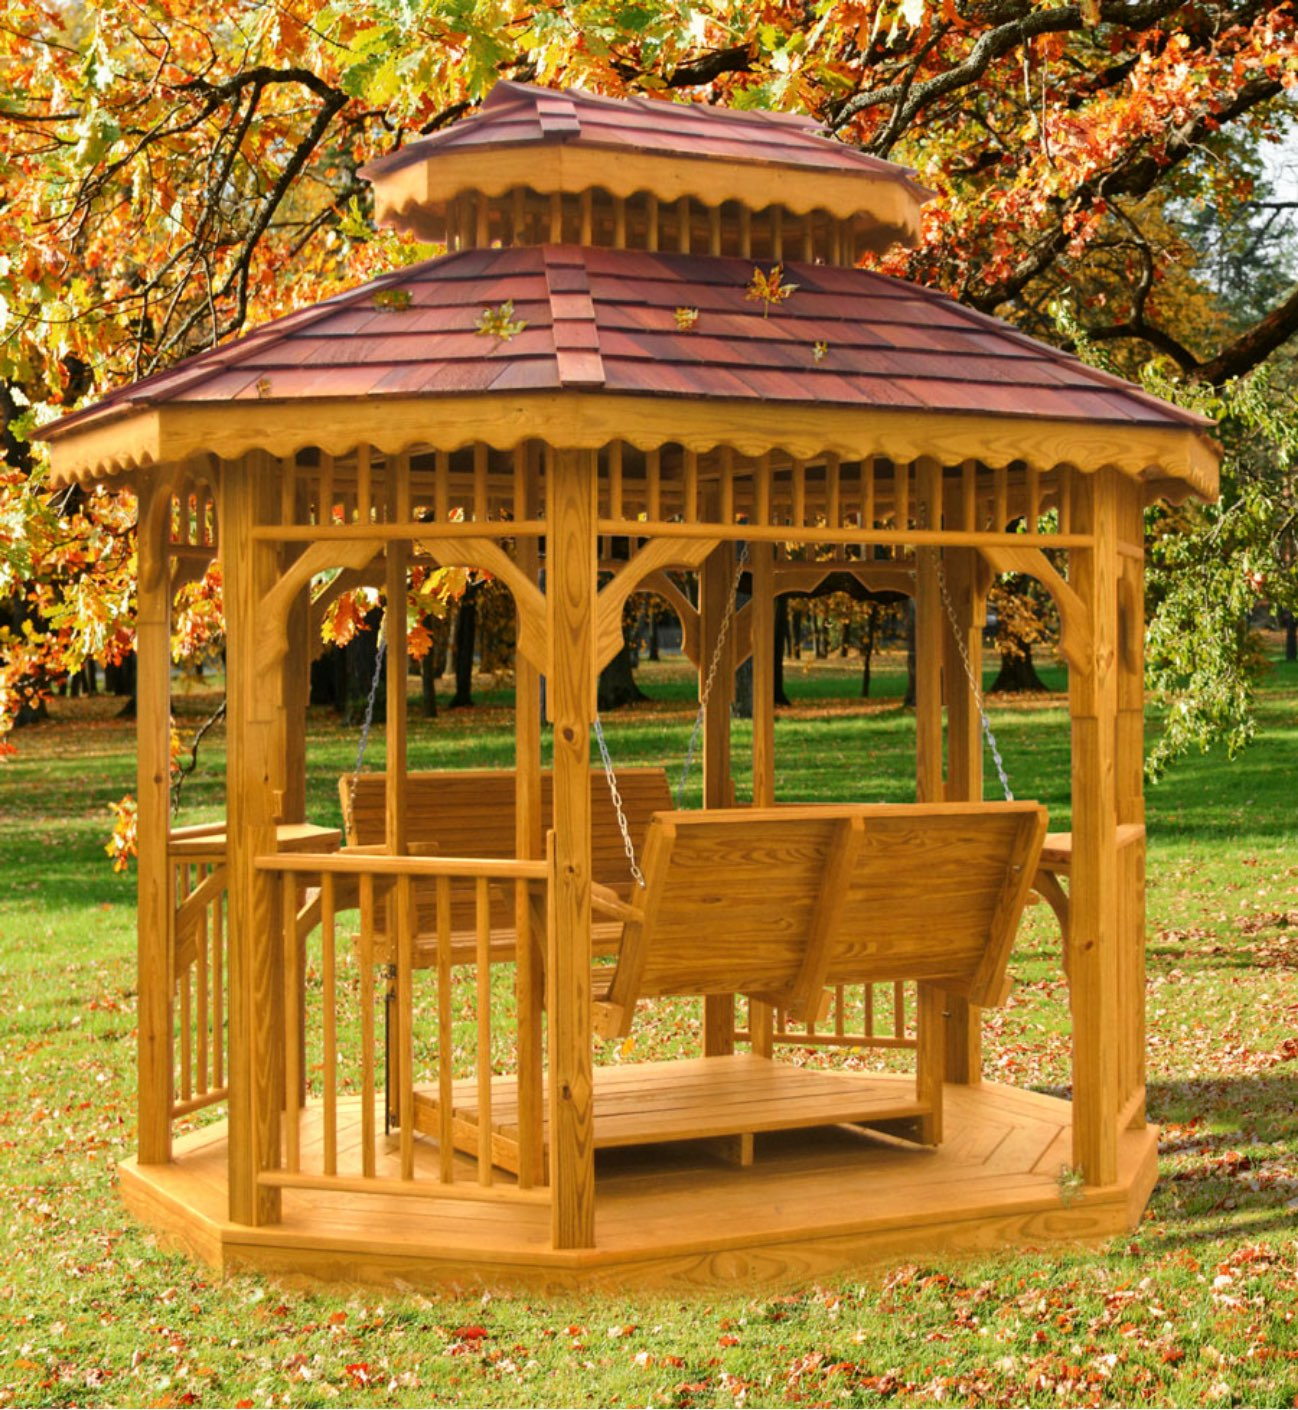 7' x 9' Deluxe Glider Teahouse